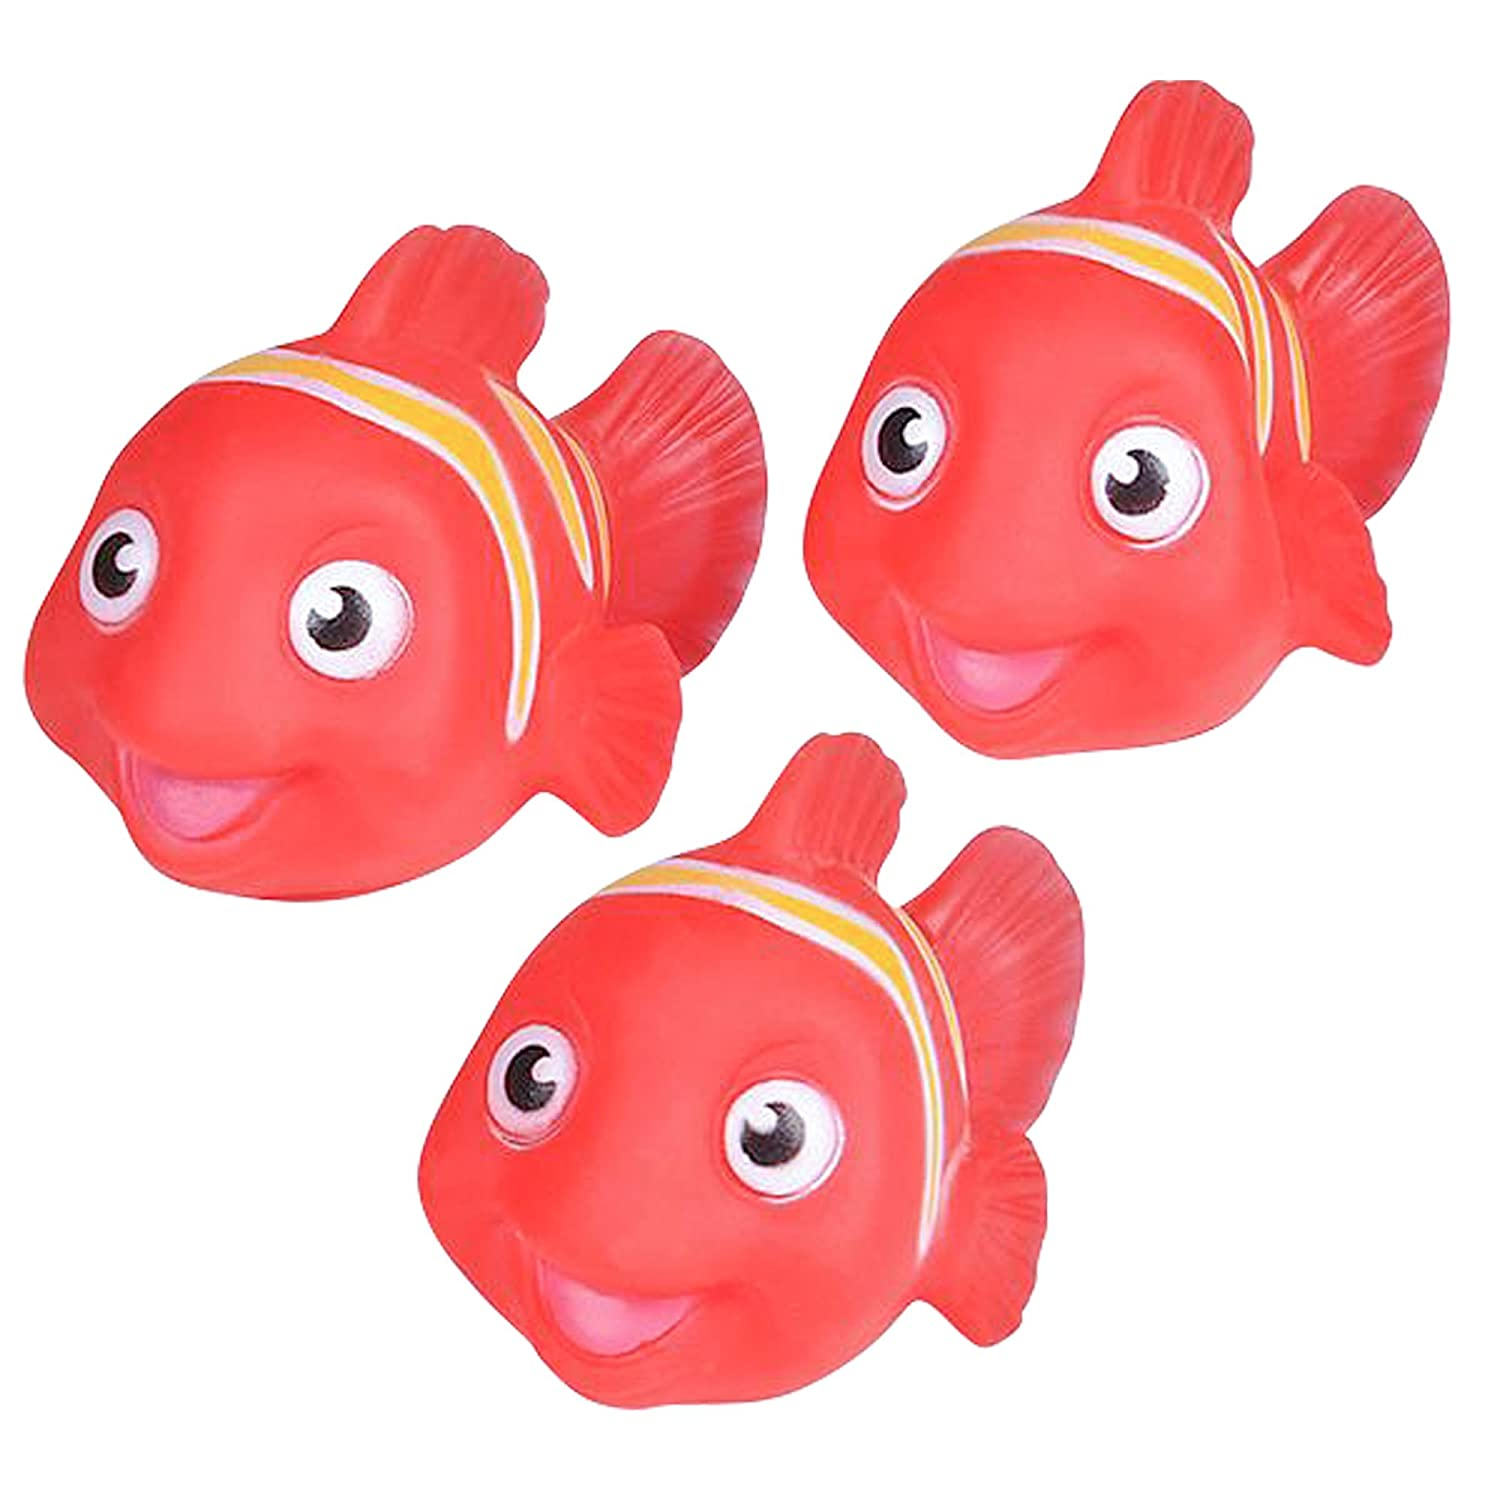 Babies Great Gift Idea for Boys Floating Clownfish Bath Play Set Beach Girls Fun Water Bathtub Toys for Kids Non Toxic Fish Playing Kit for Tub Pool by ArtCreativity 4 Piece Toddlers